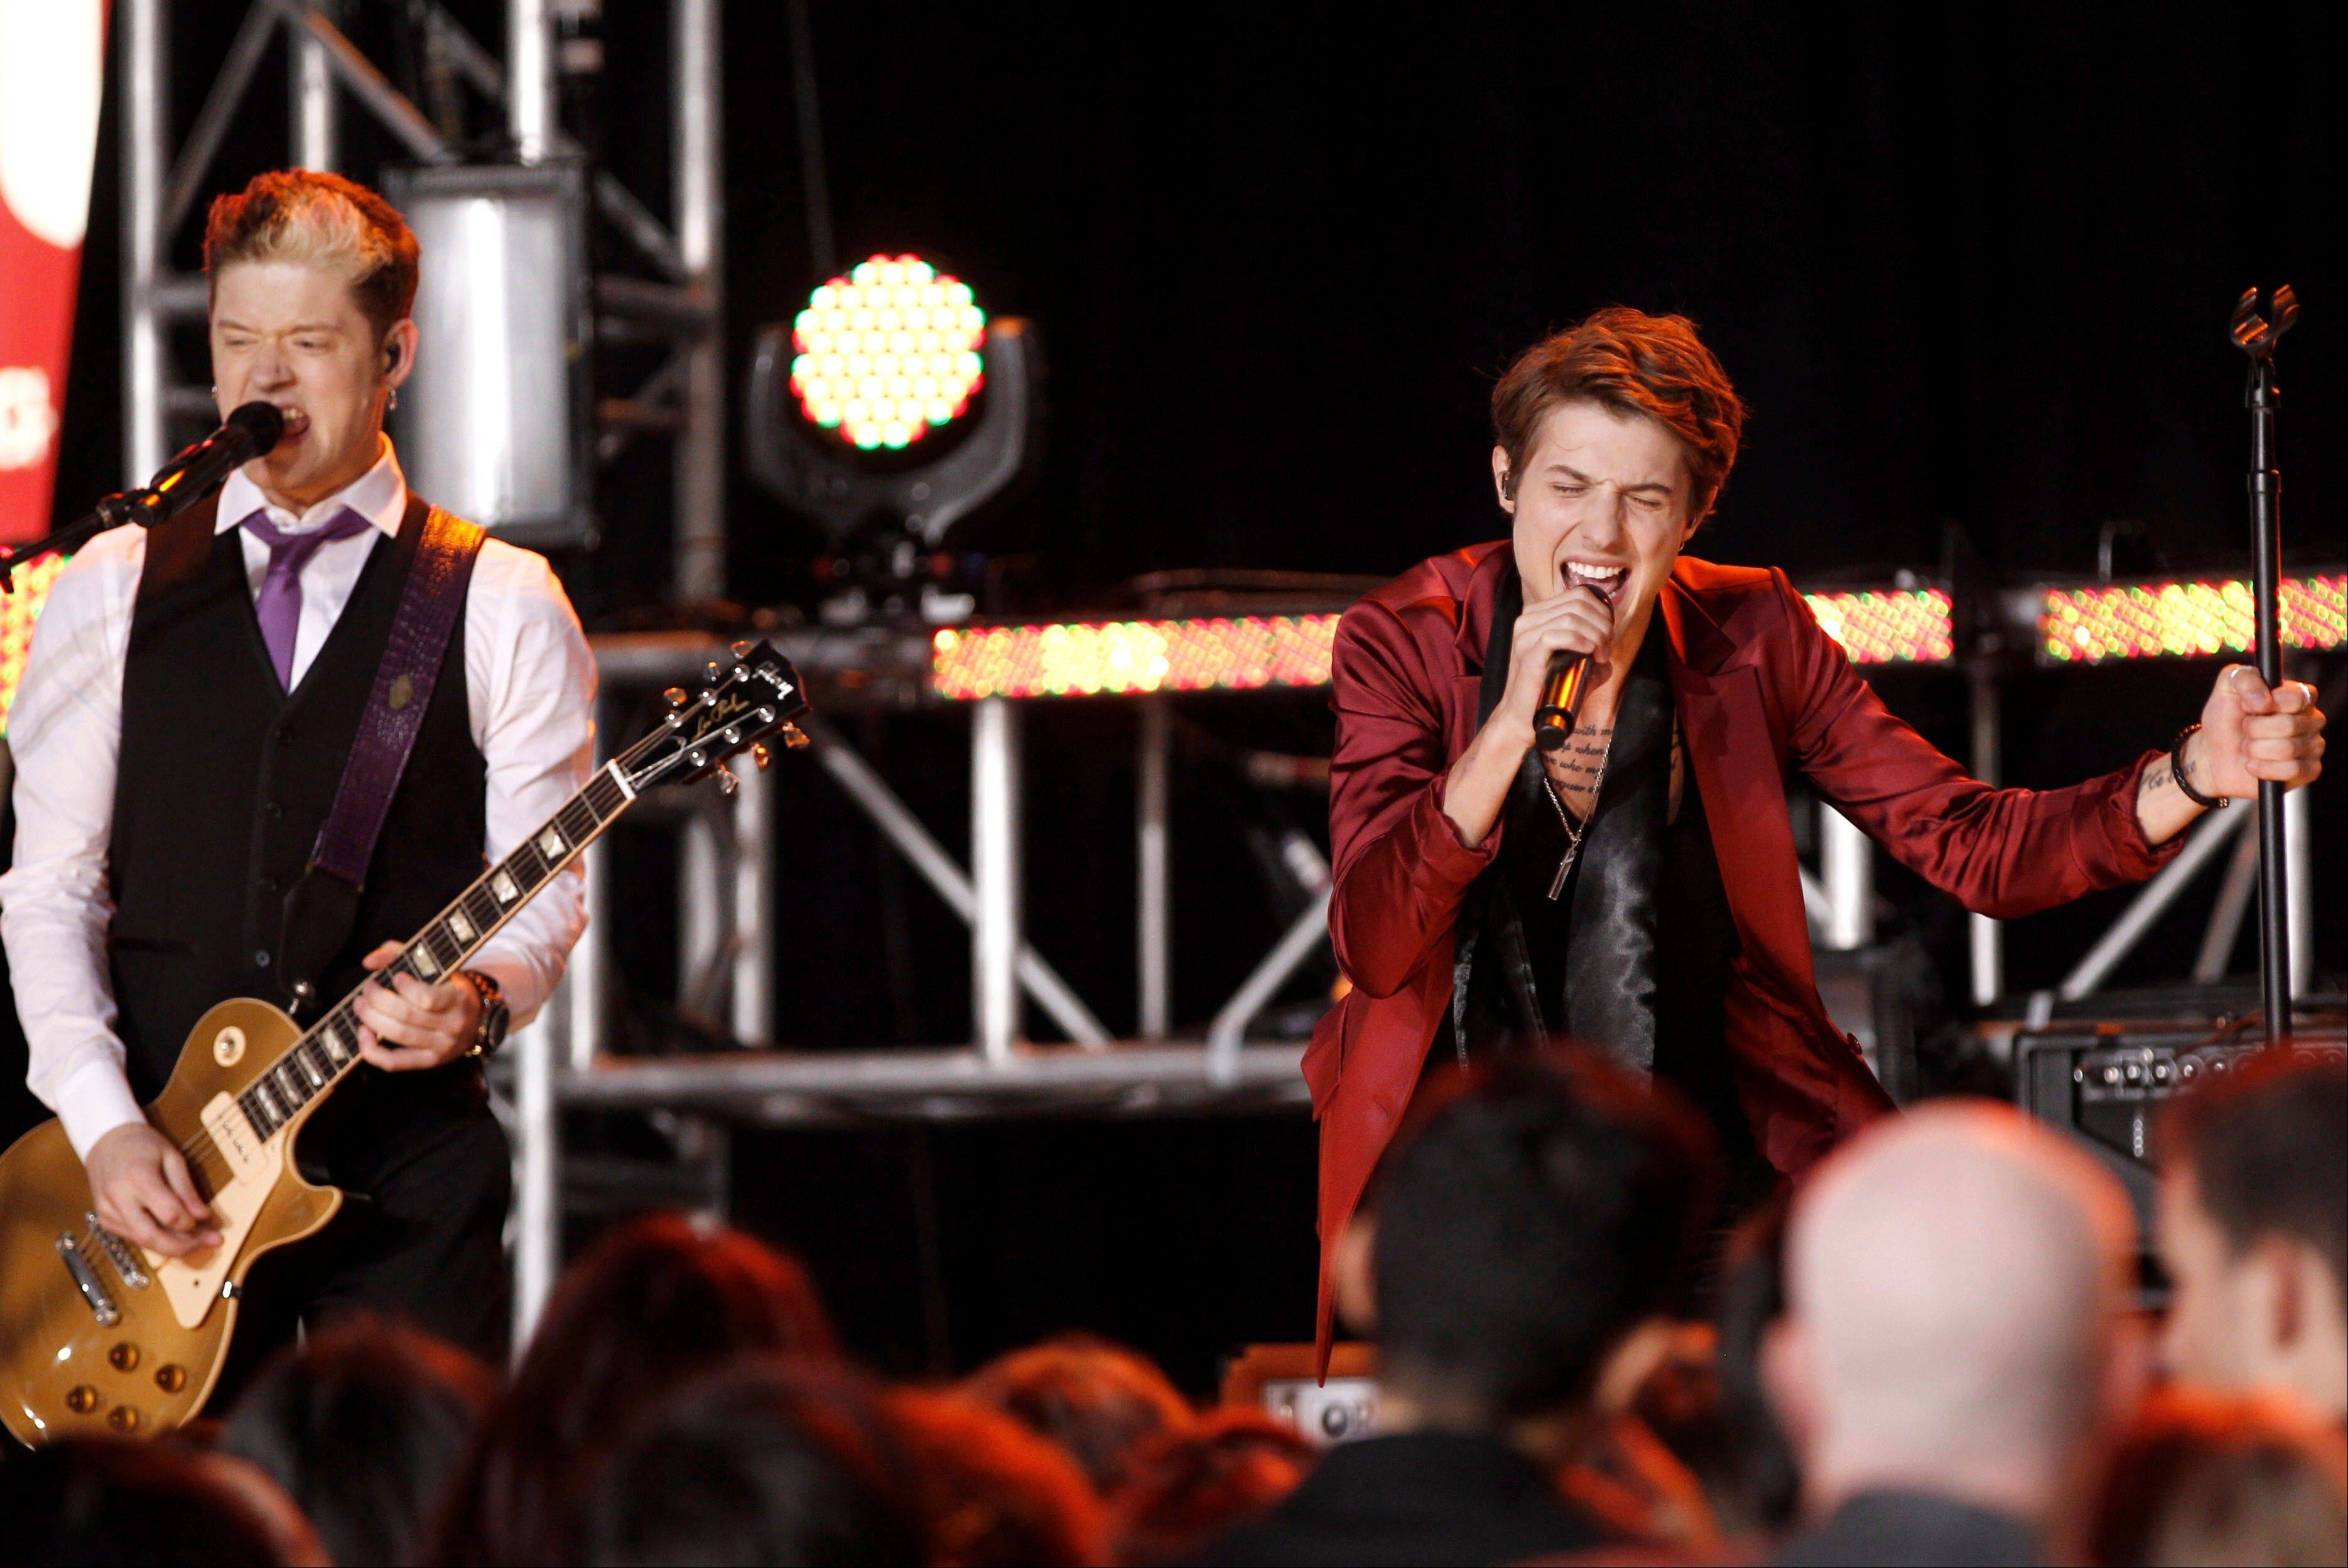 Hot Chelle Rae performs at the 39th Annual American Music Awards on Sunday, Nov. 20, 2011 in Los Angeles.